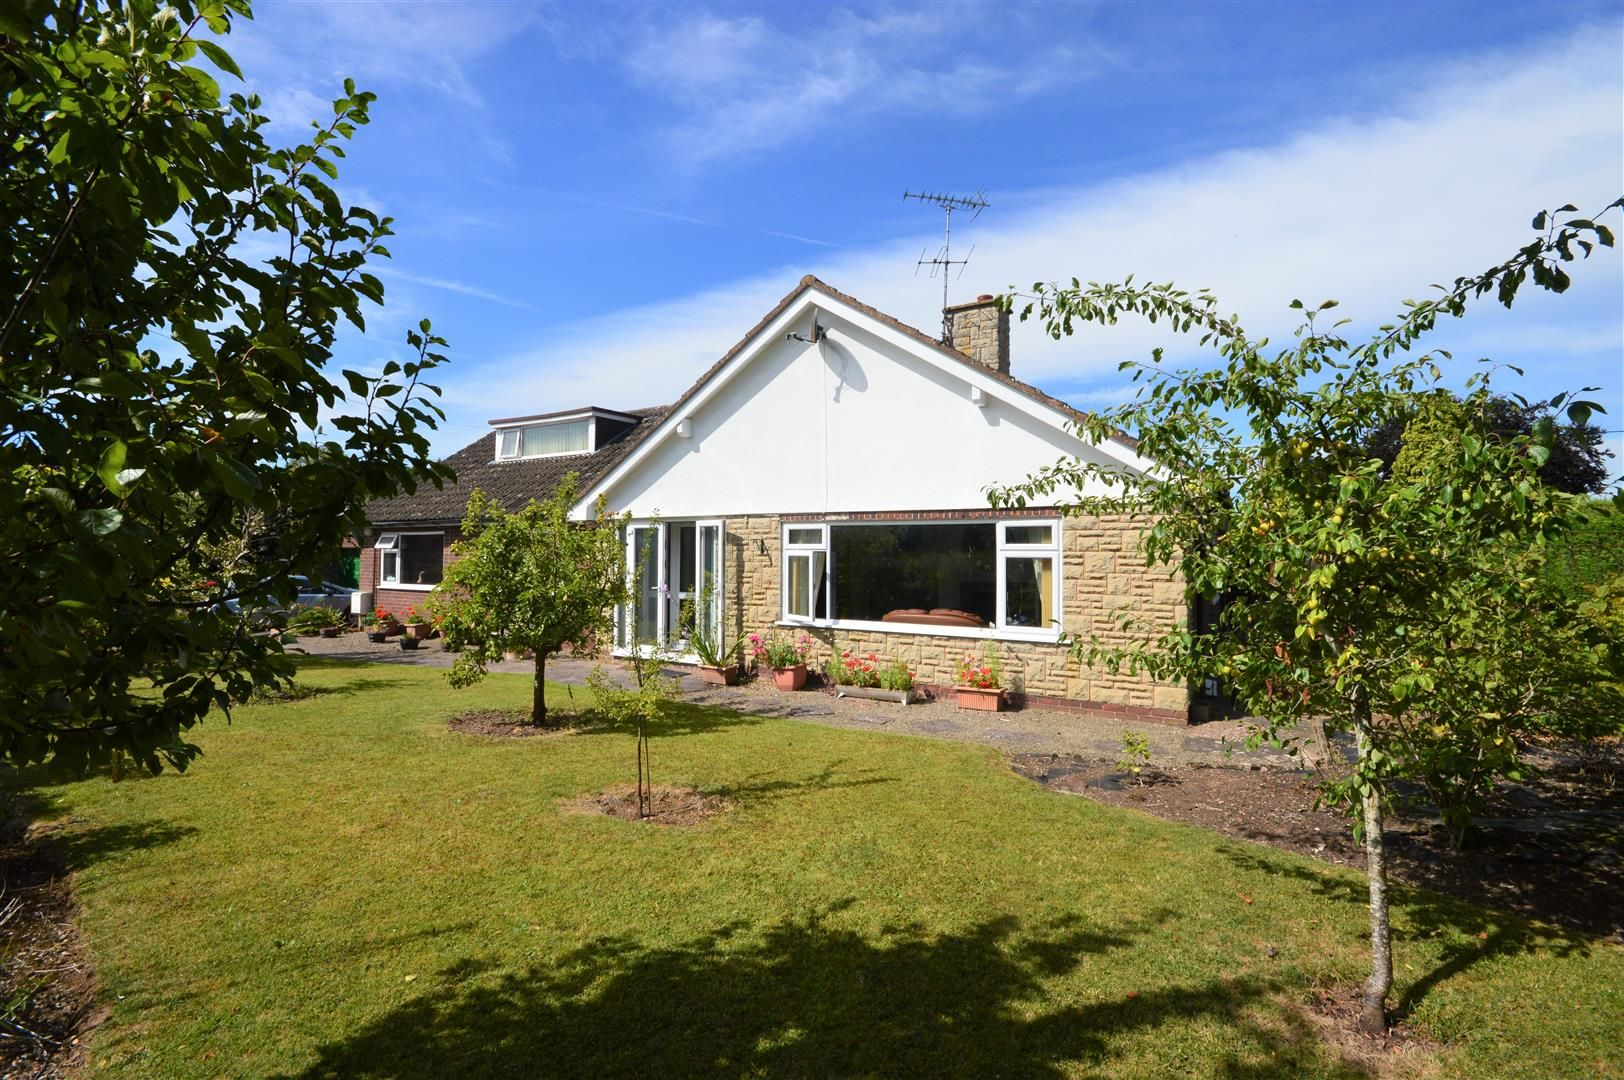 4 bed detached bungalow for sale in Bodenham, HR1